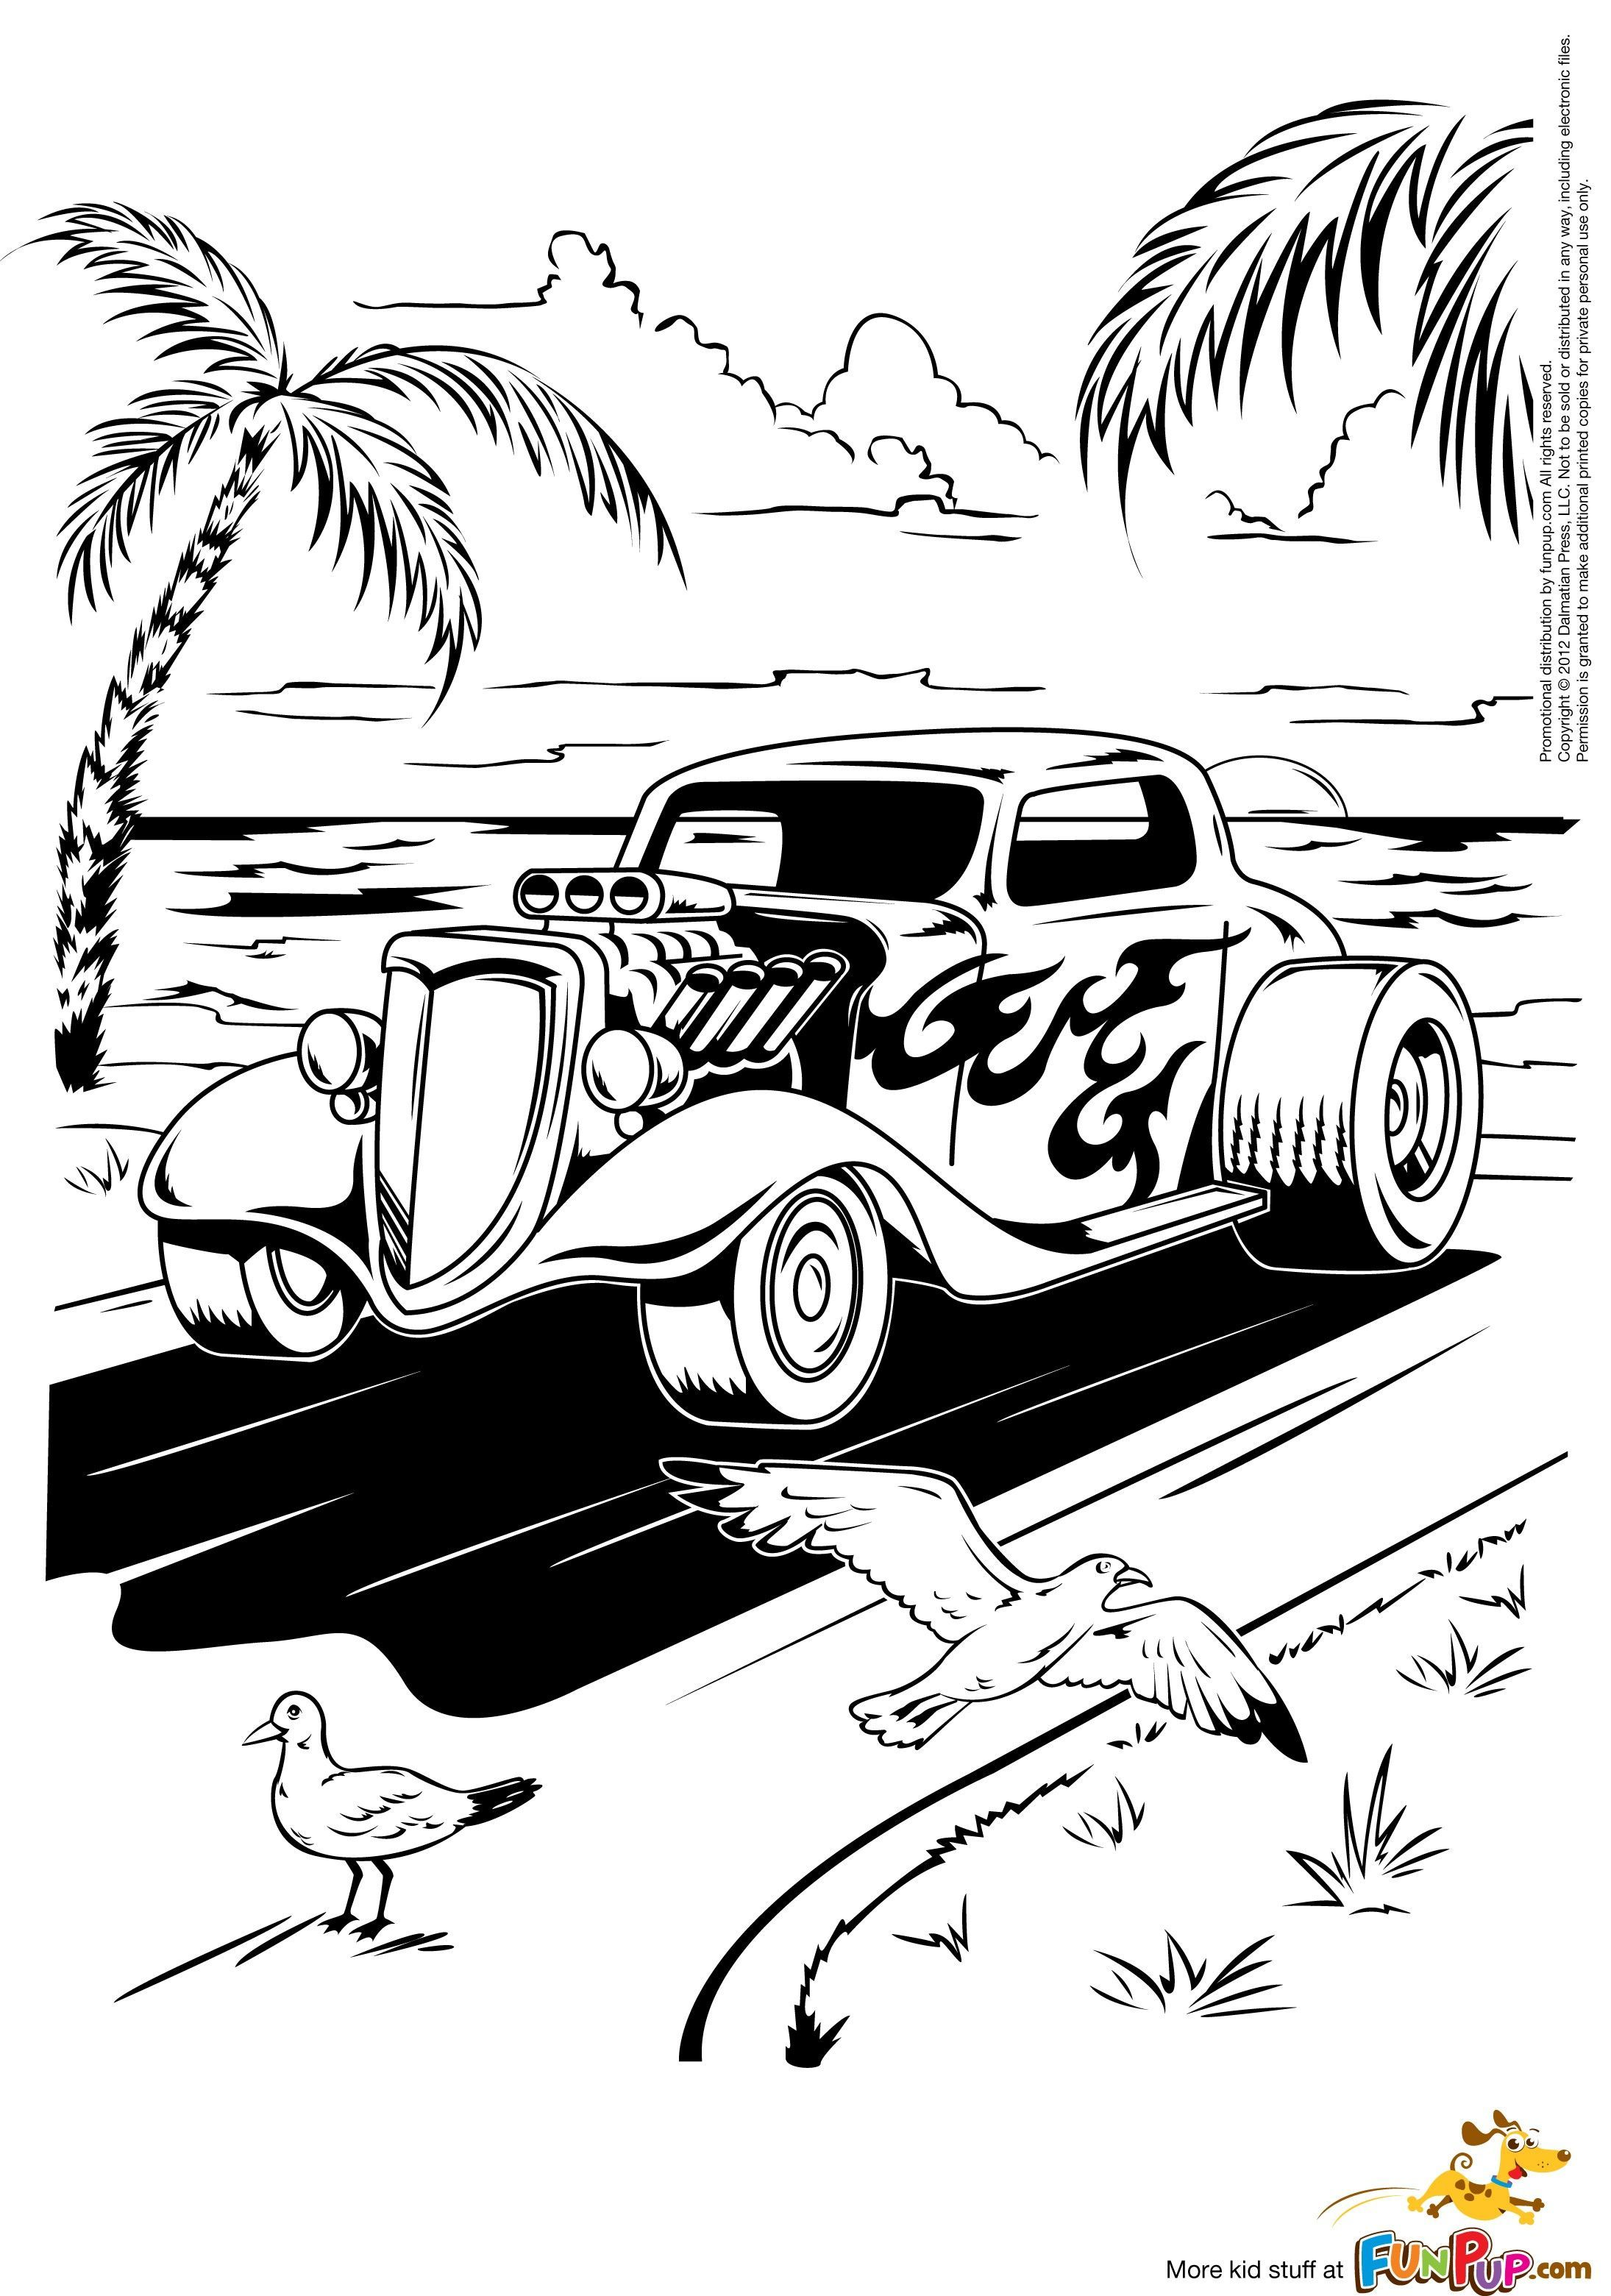 Hot Rod Coloring Page Cart Toon Cars Coloring Pages Cars Coloring Pages Beach Coloring Pages Coloring Books